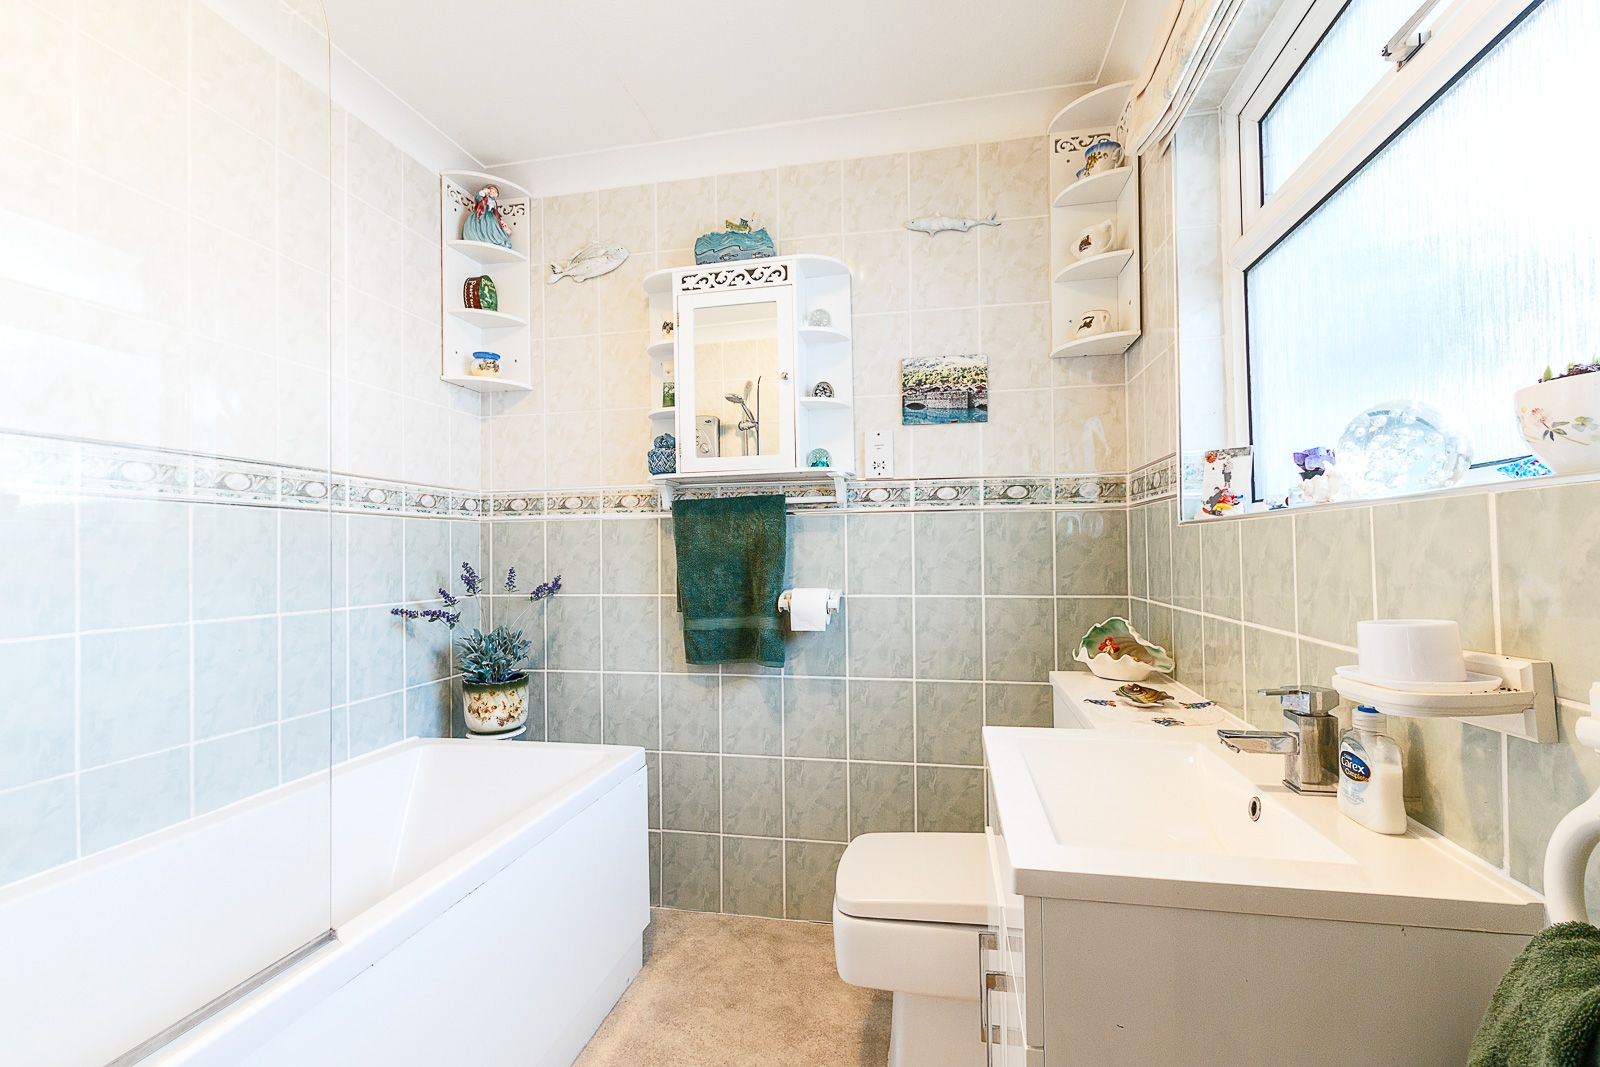 3 bed Bungalow for sale in East Preston - Family bathroom (Property Image 11)